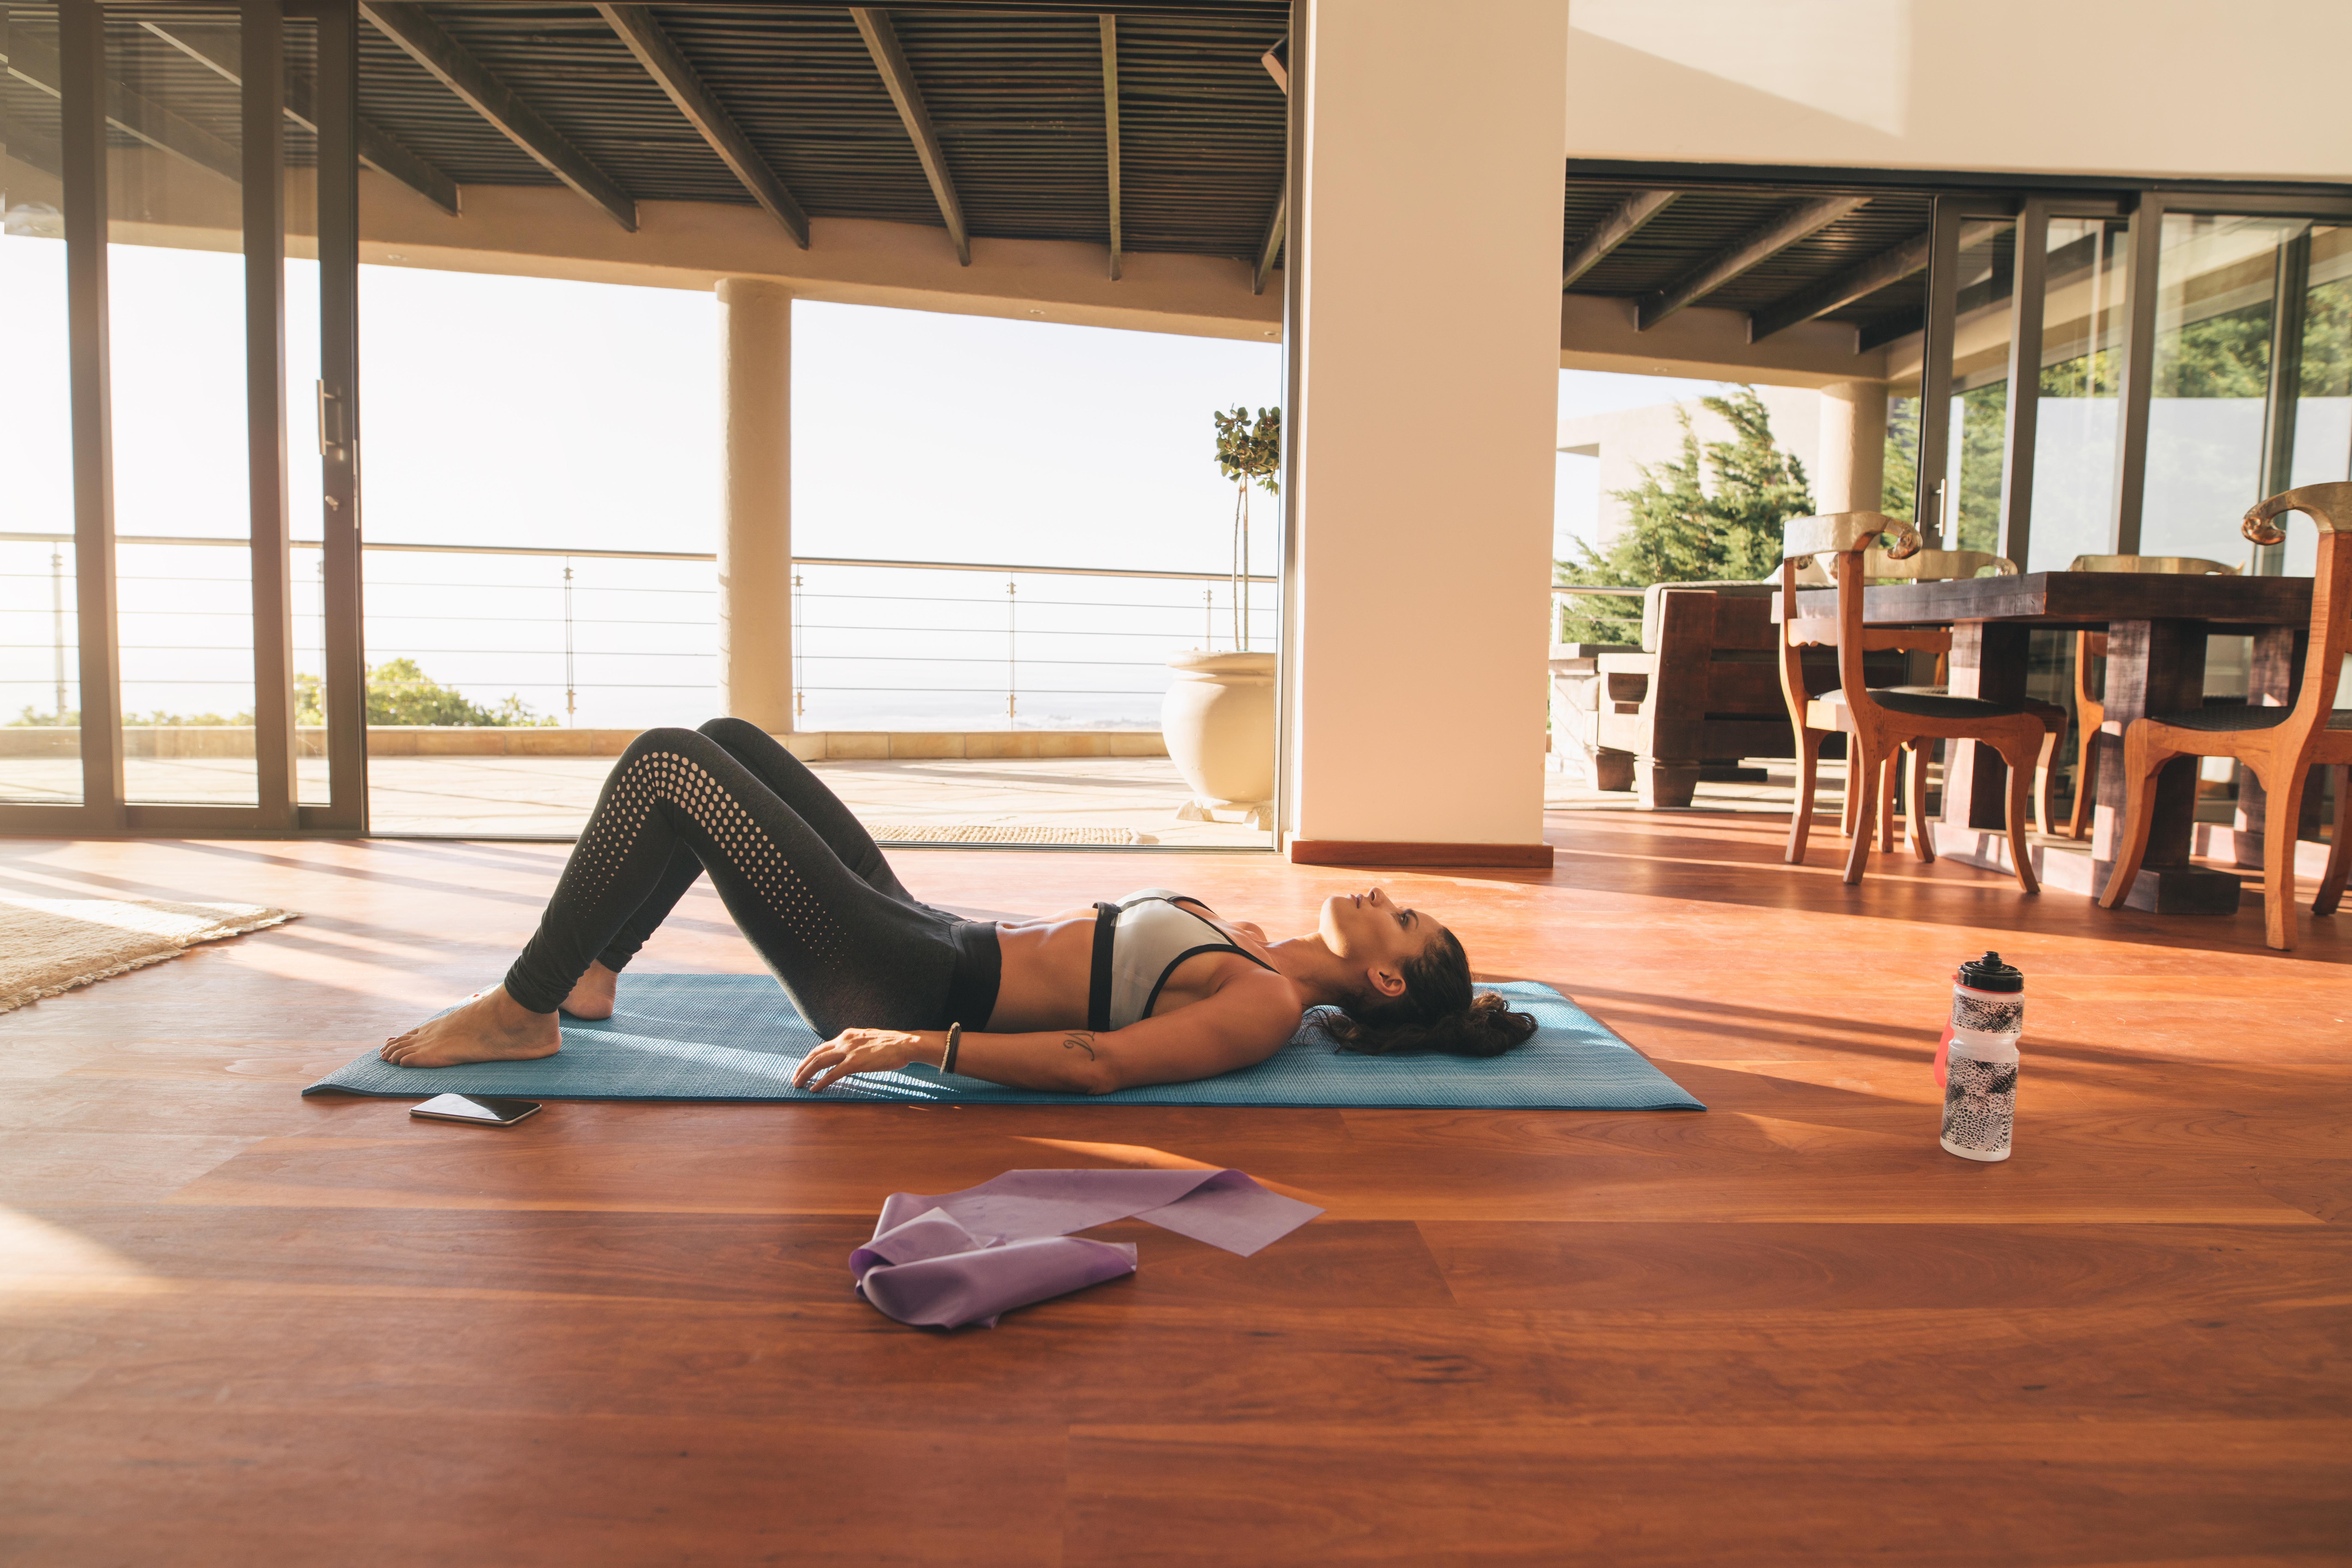 featured-image-female-relaxing-on-floor-after-workout